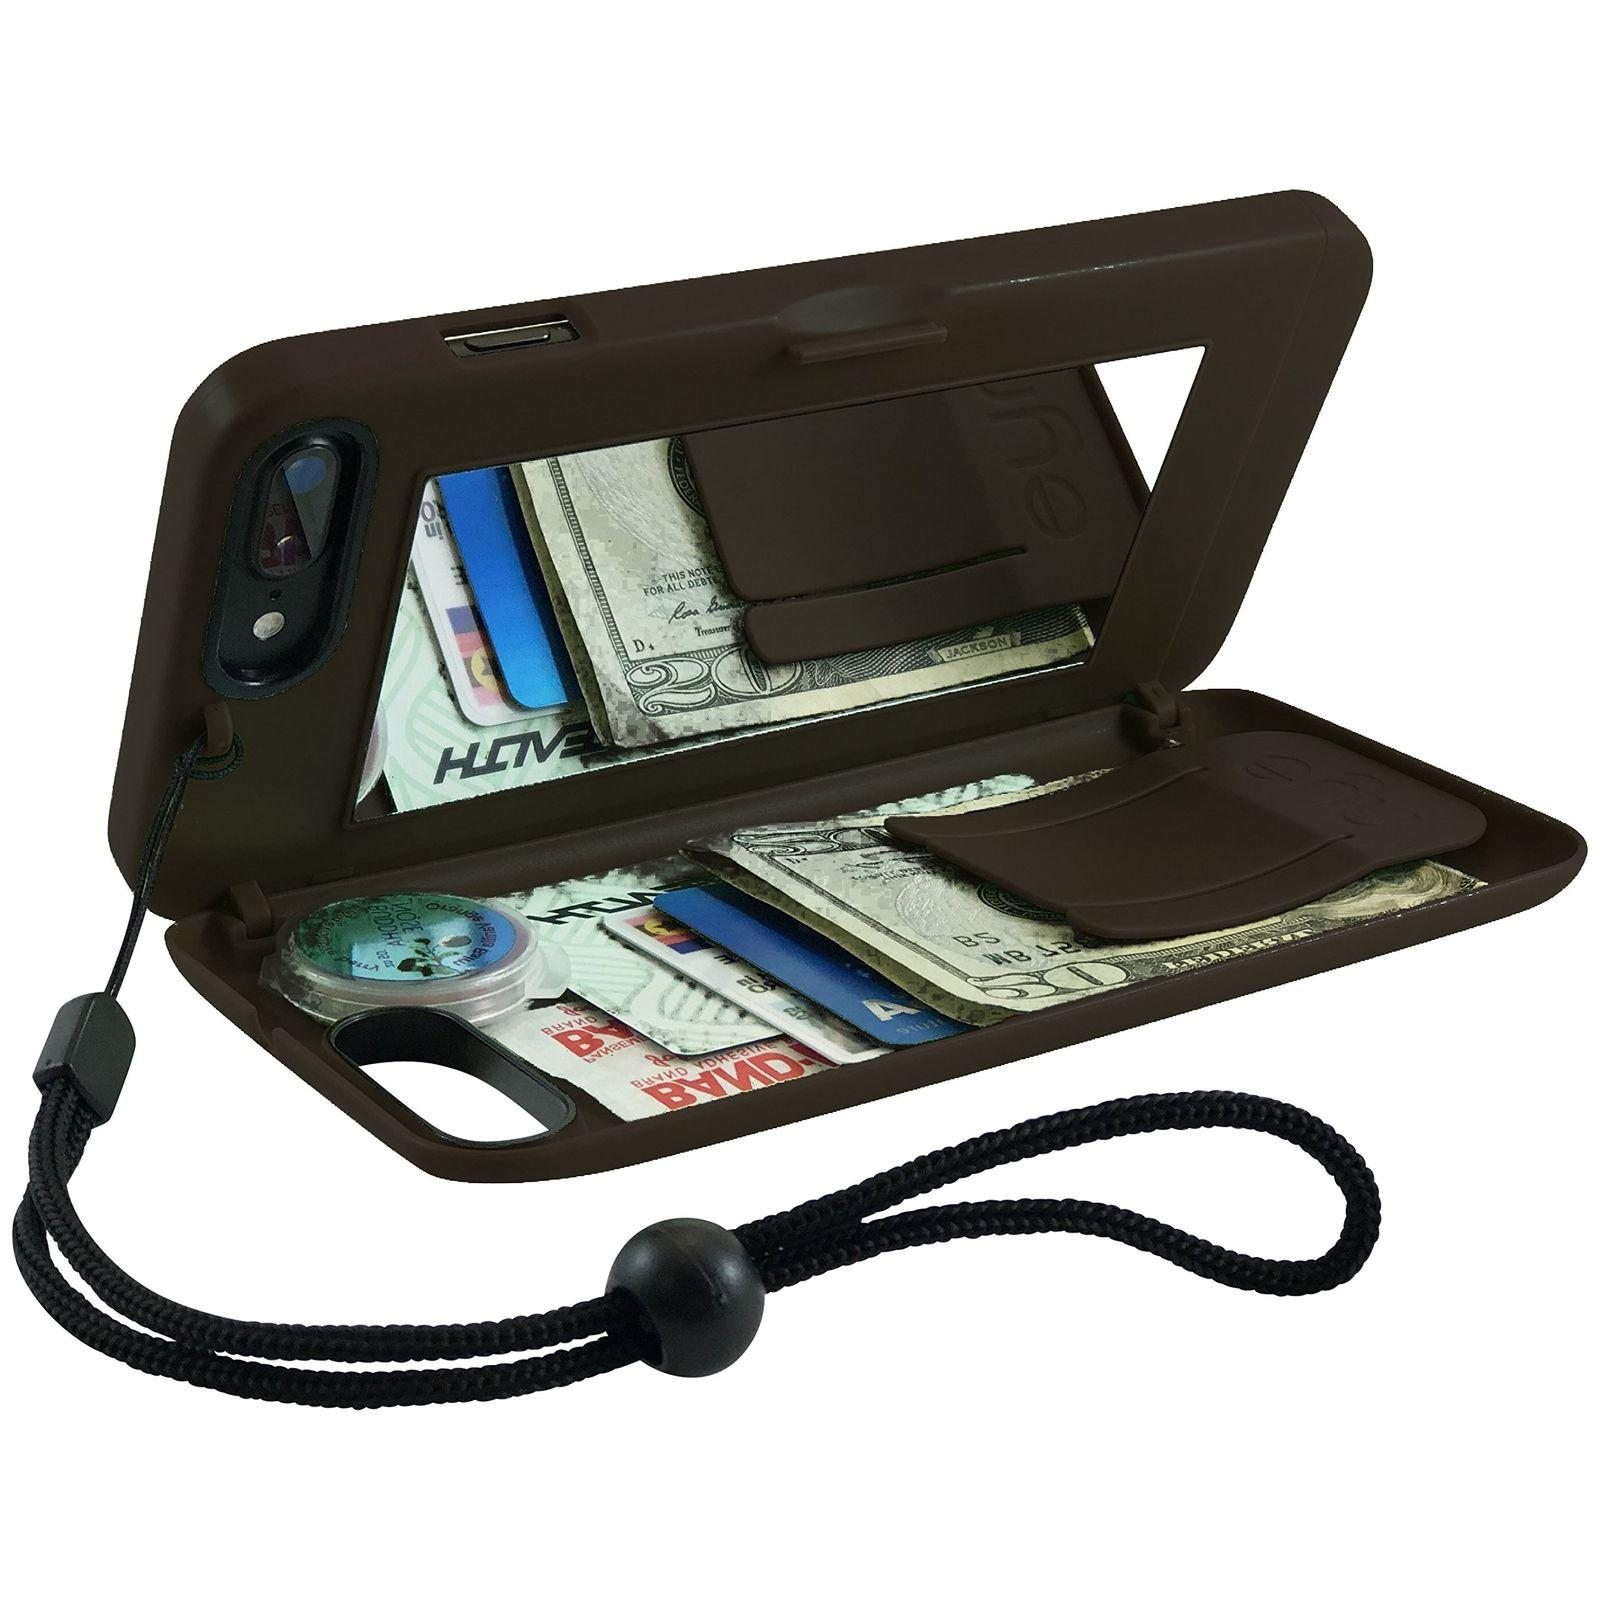 EYN Products Wallet Case for Apple iPhone 7 - Black